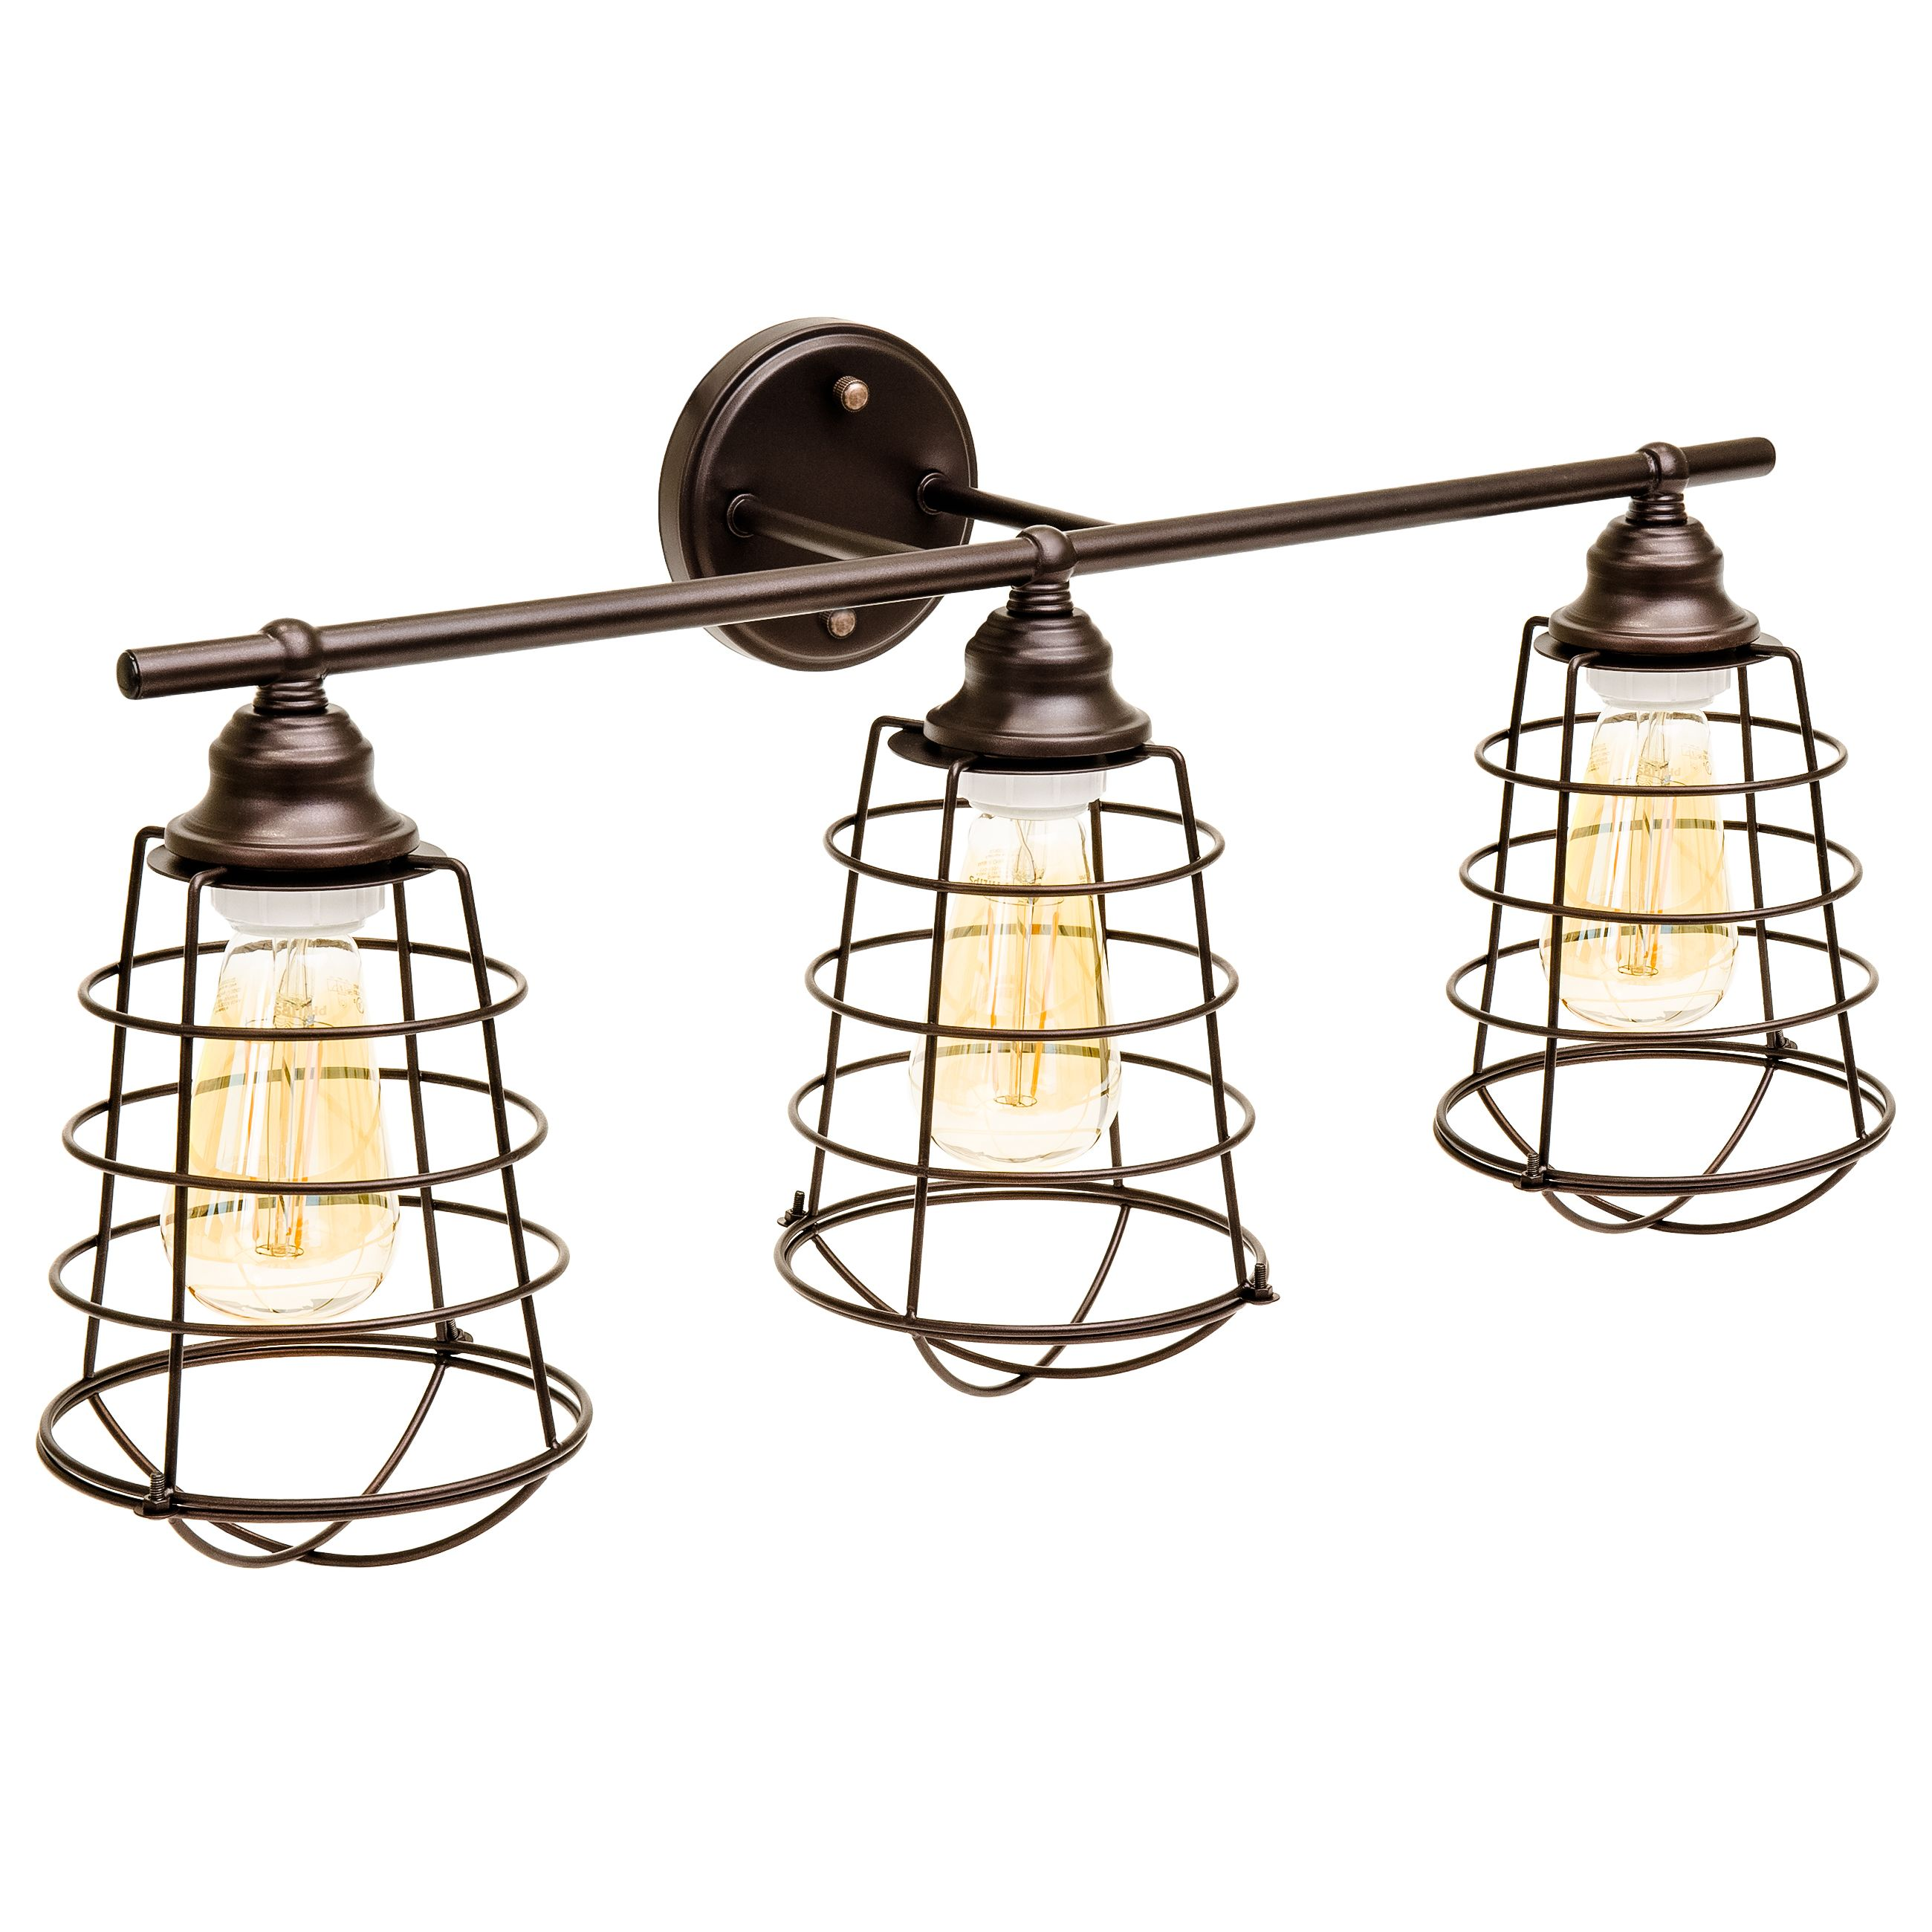 Home Light Fixtures Bathroom Vanity Bathroom Vanity Lighting